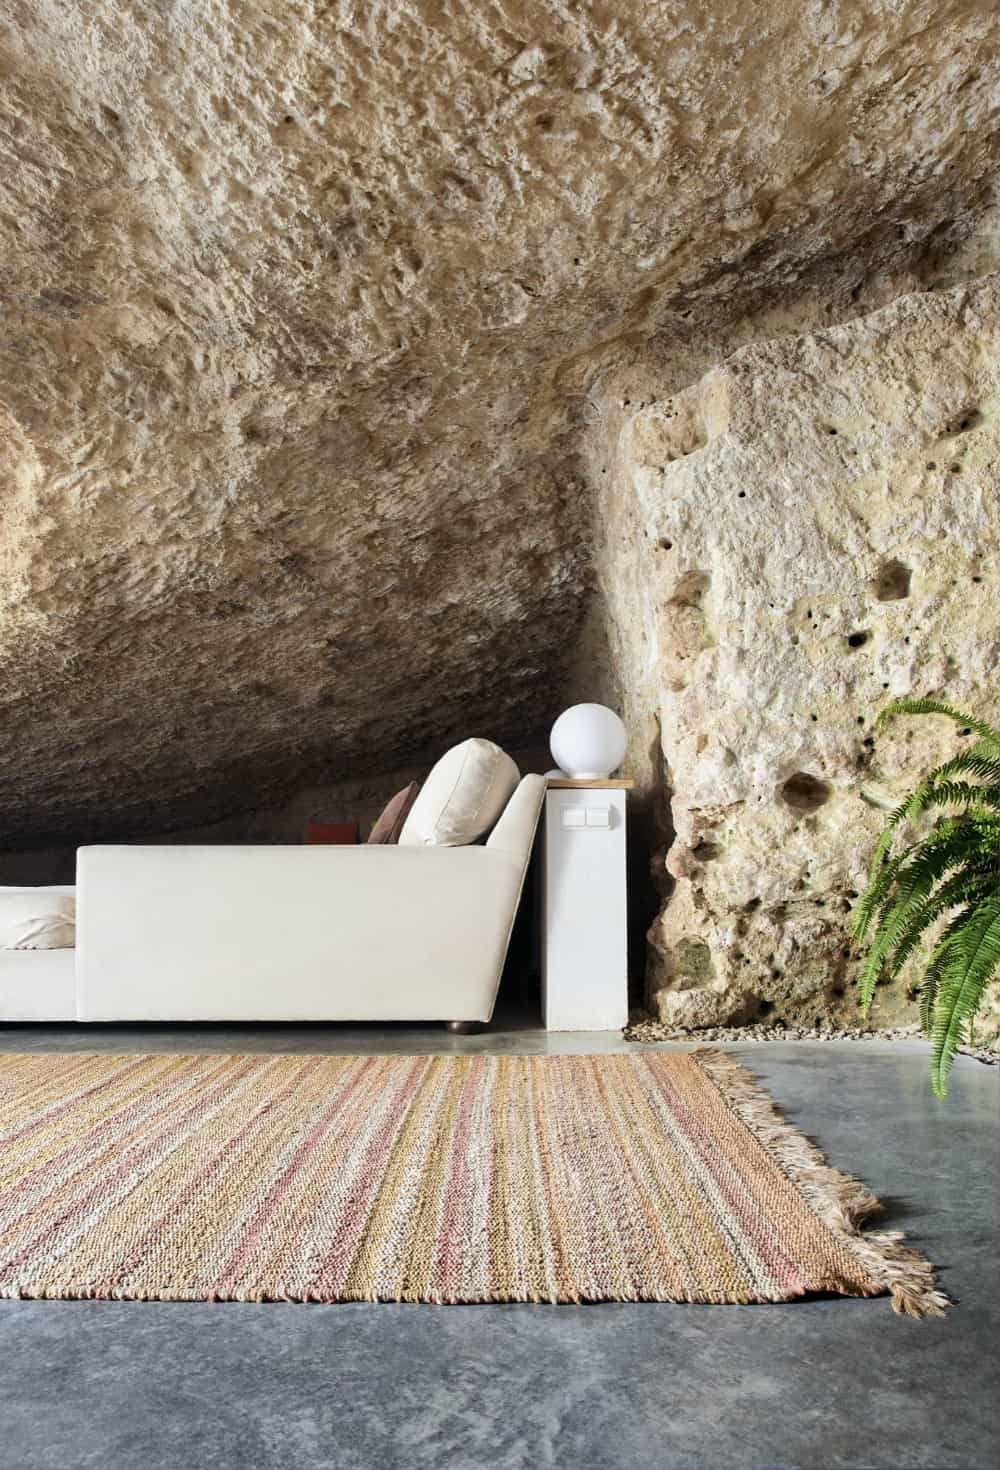 Soft rugs create a more homely atmosphere